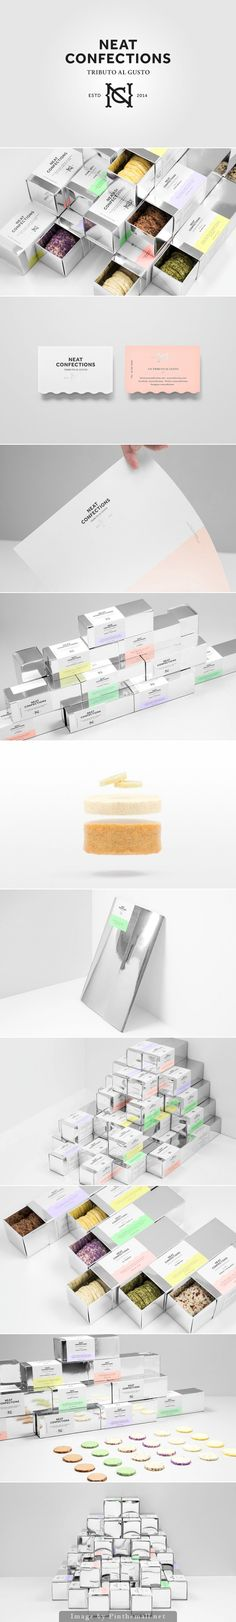 Neat Confections by